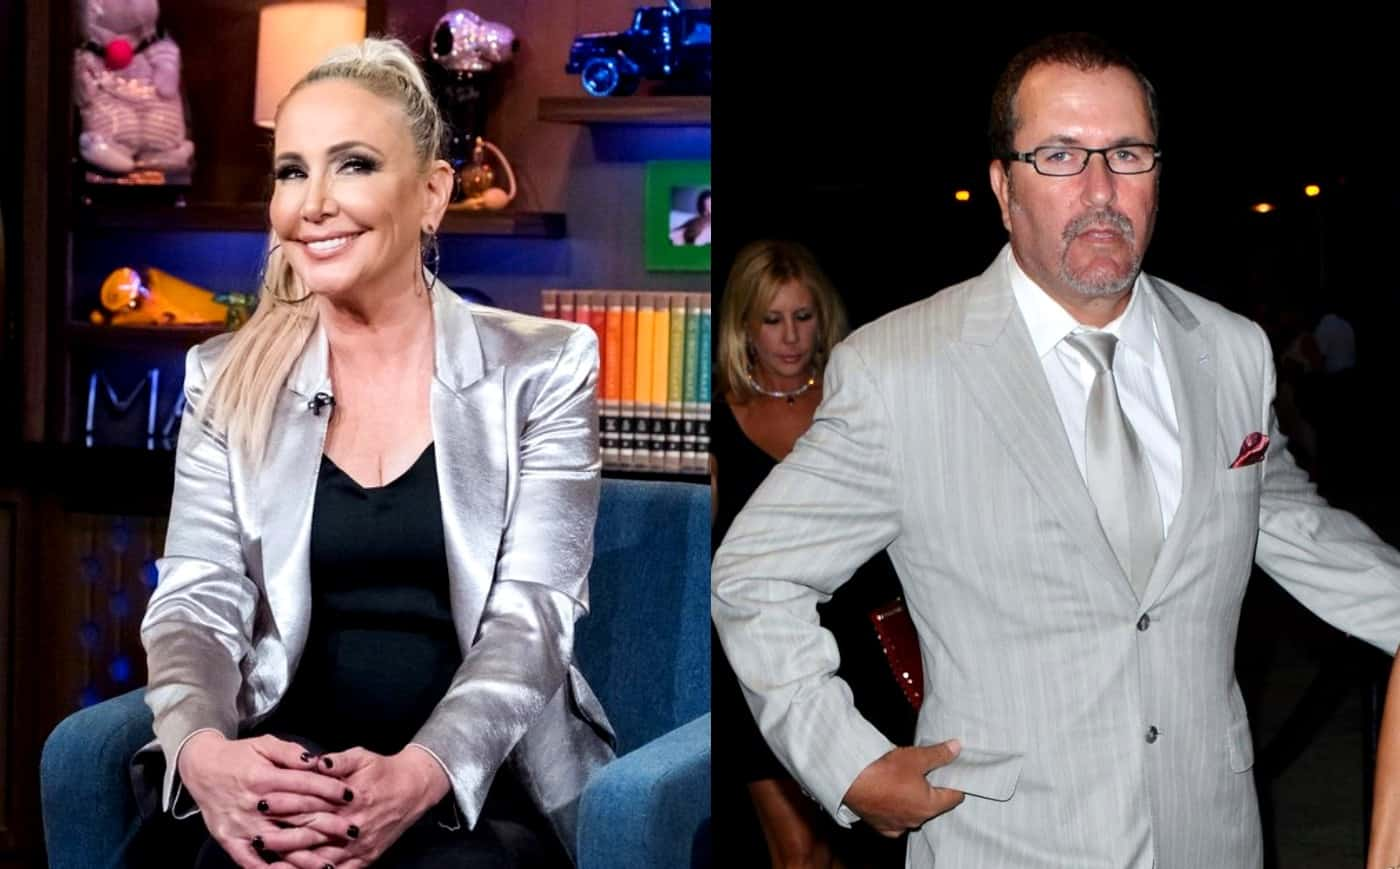 RHOC's Jim Bellino Does Not Want to Pay Shannon Beador's $220K Legal Fees After Her Victory in His Defamation Lawsuit